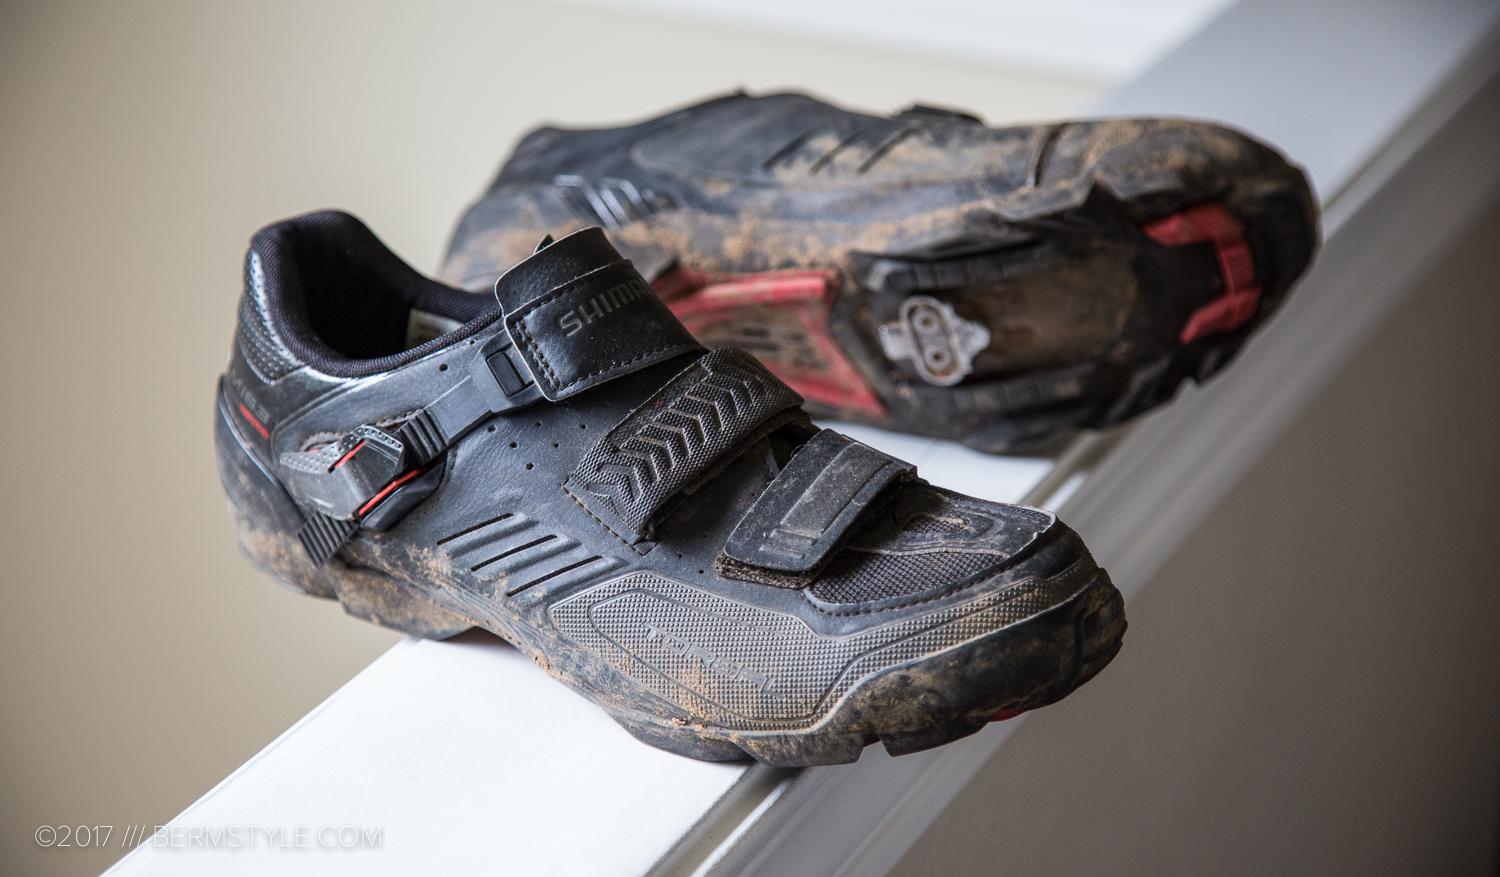 Shimano Vibram Shoes Review